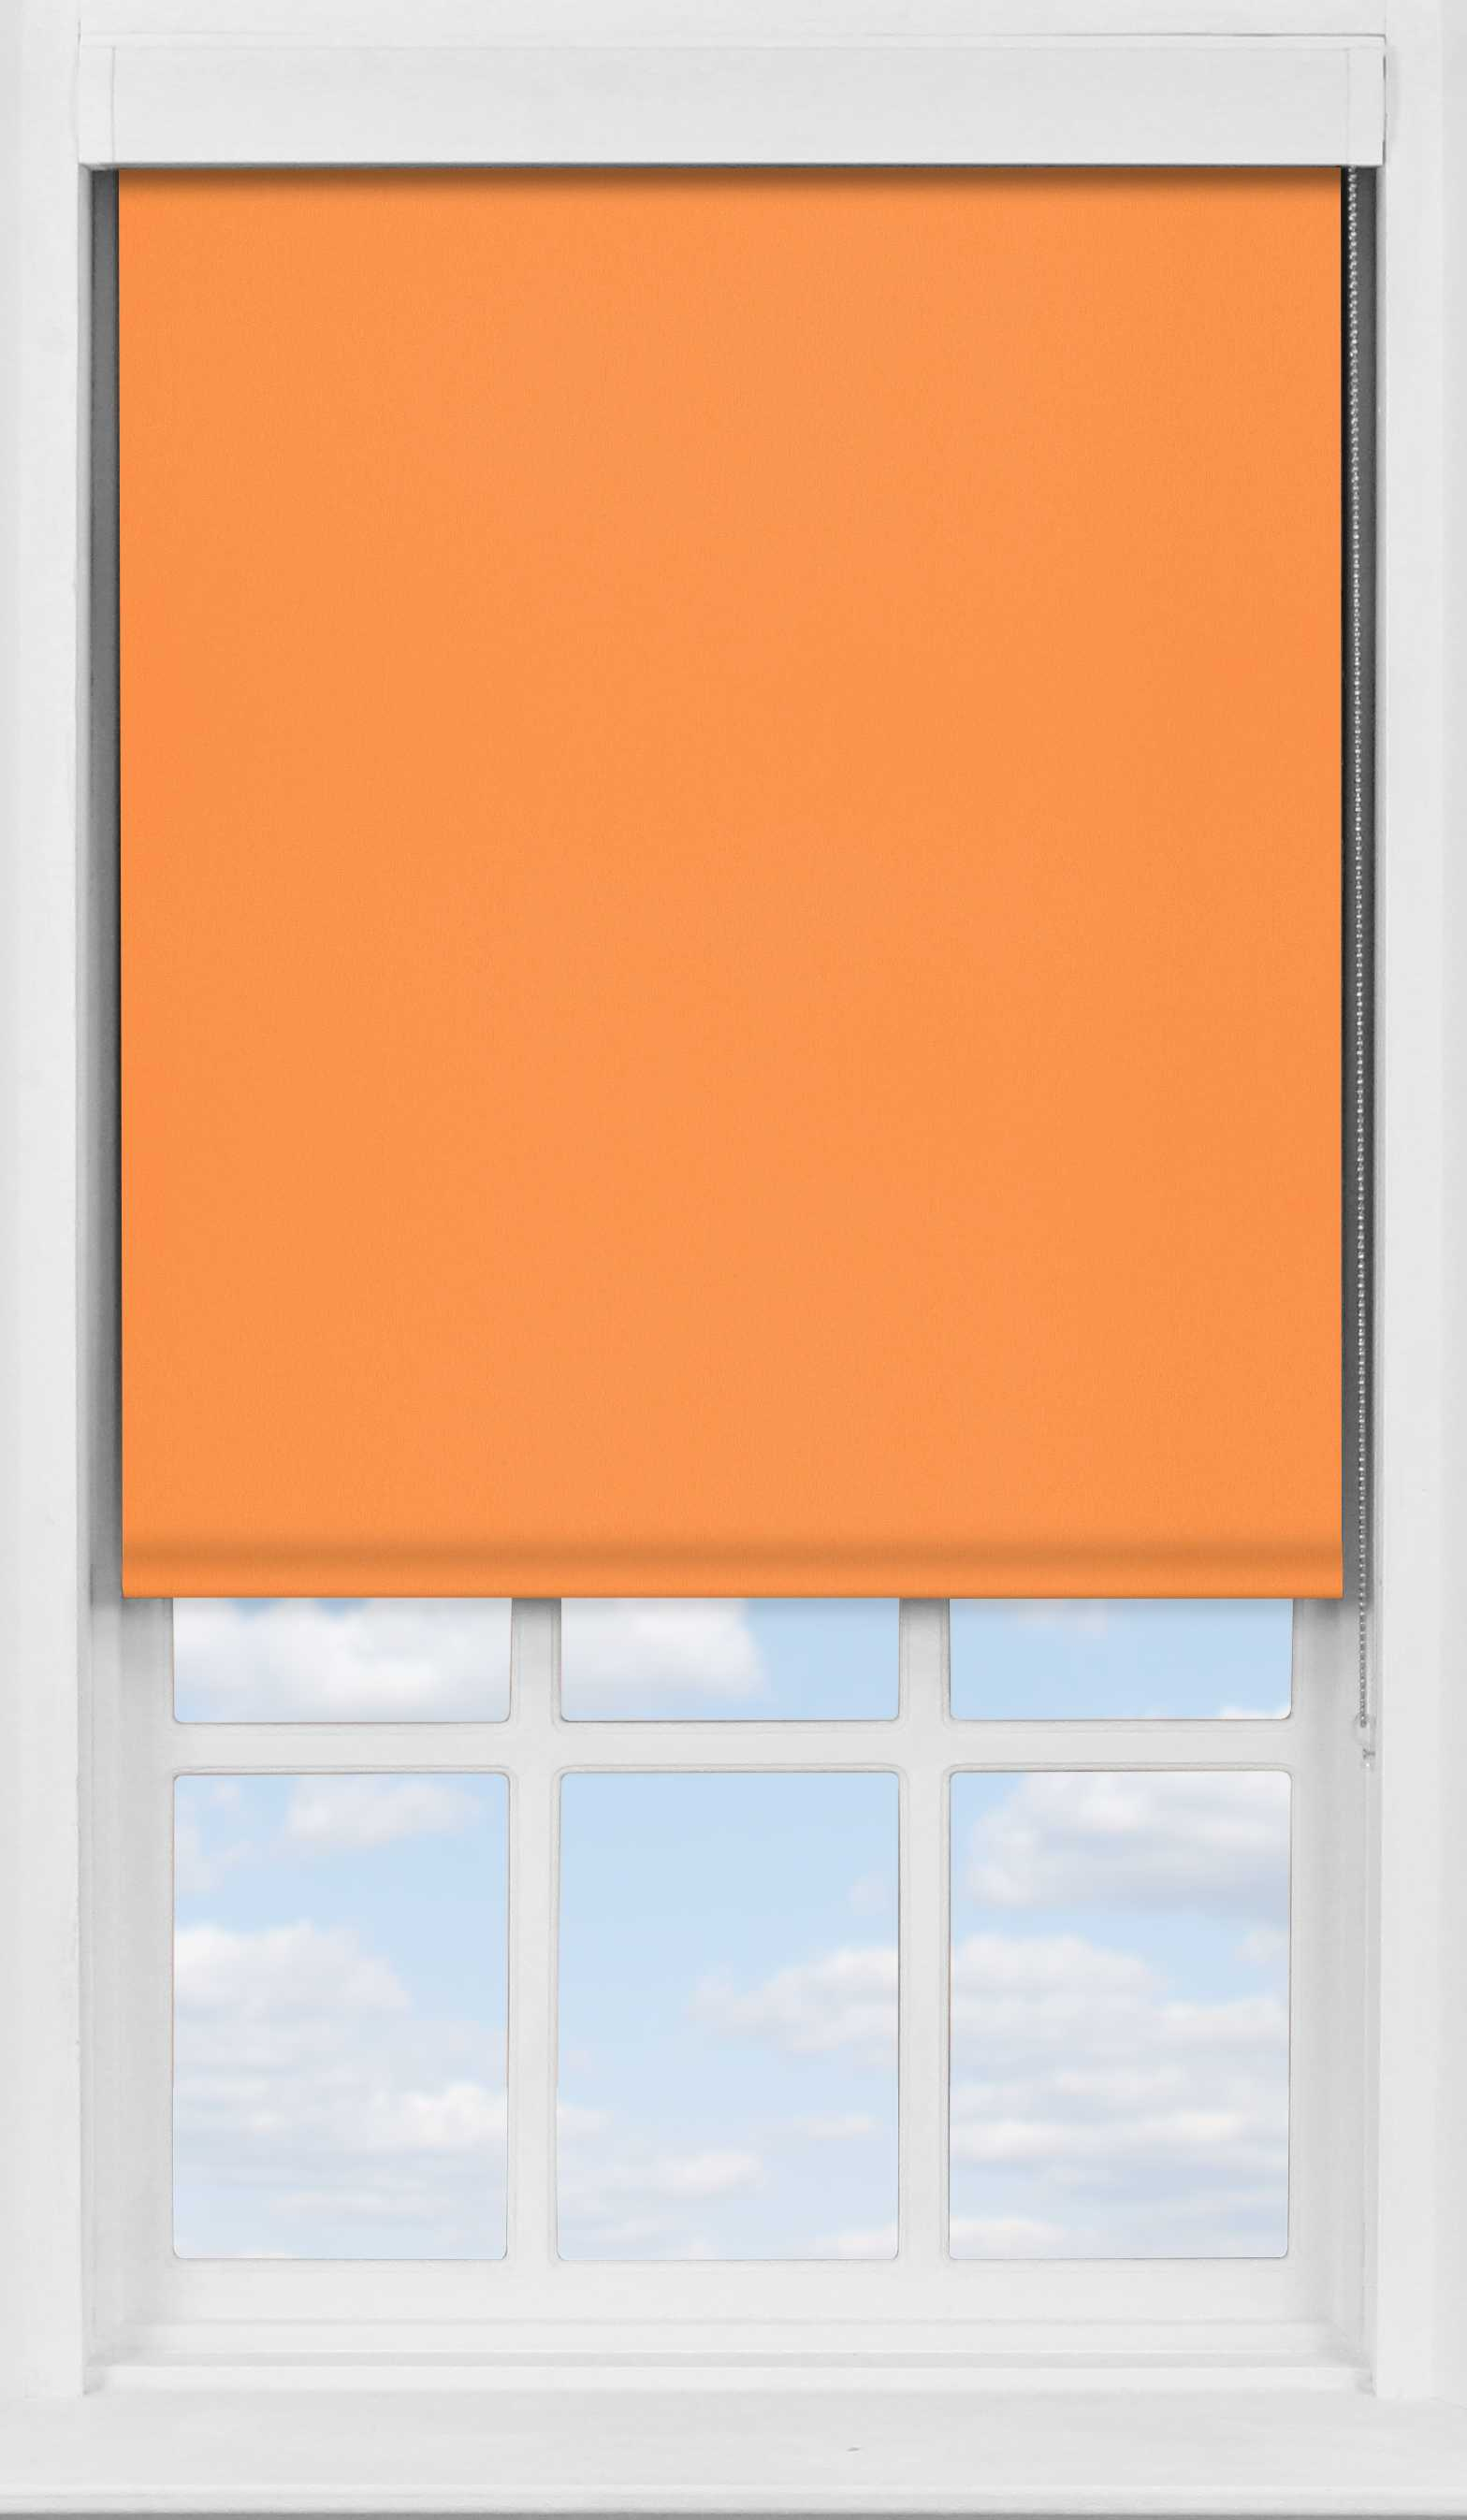 Premium Roller Blind in Amber Sunset Translucent